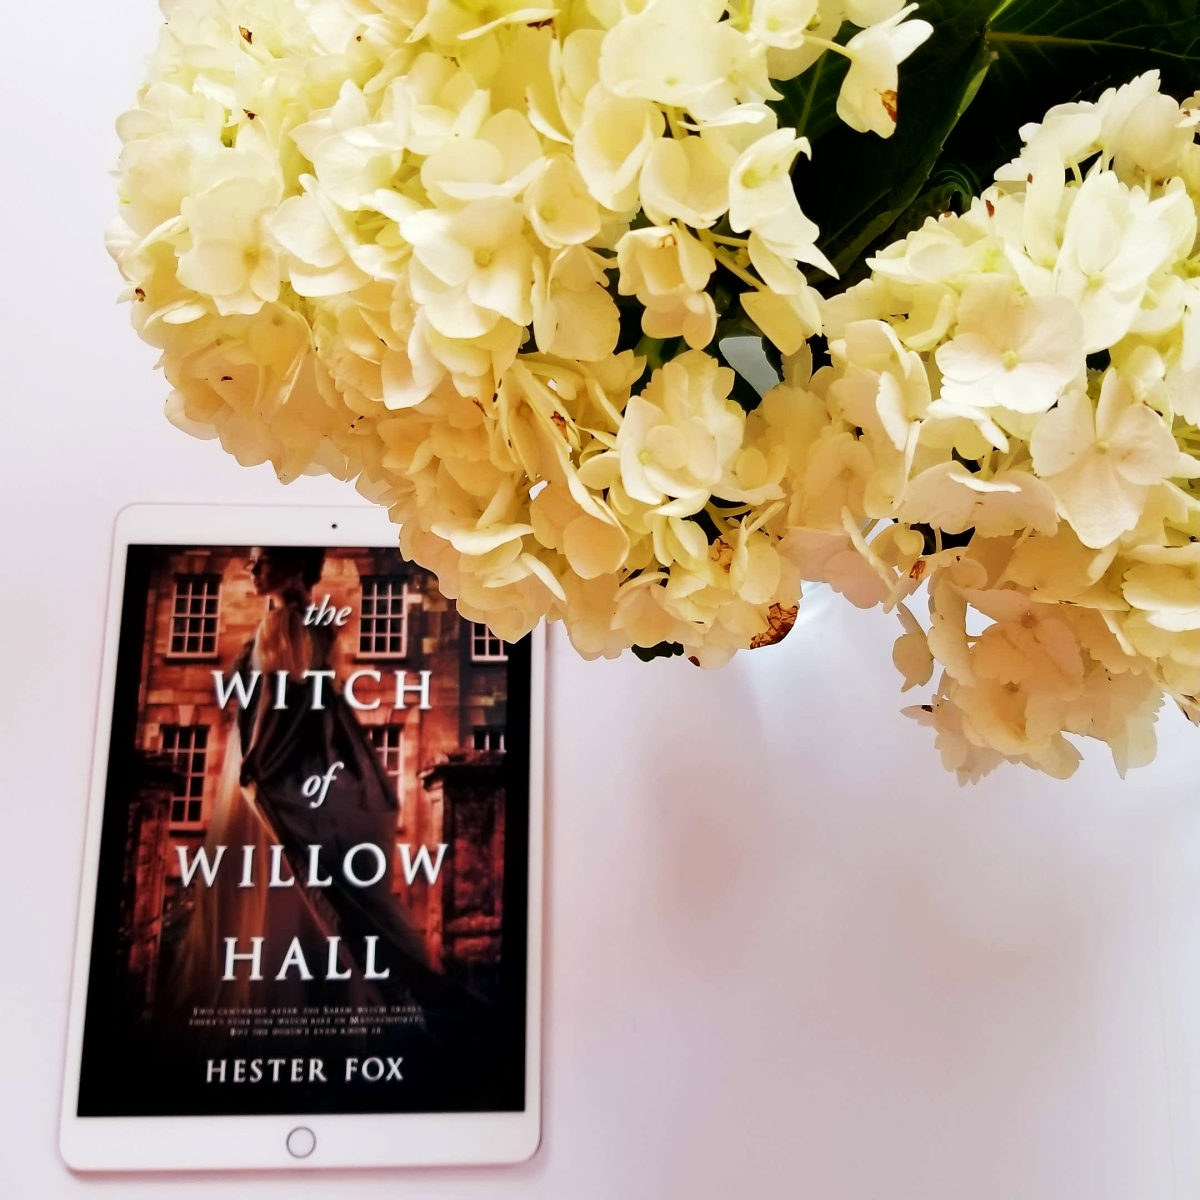 I can't wait for ... (Can't-Wait Wednesday/Waiting on Wednesday) #cantwaitwednesday #tarheelreader @hesterbfox @harlequinbooks #thewitchofwillowhall